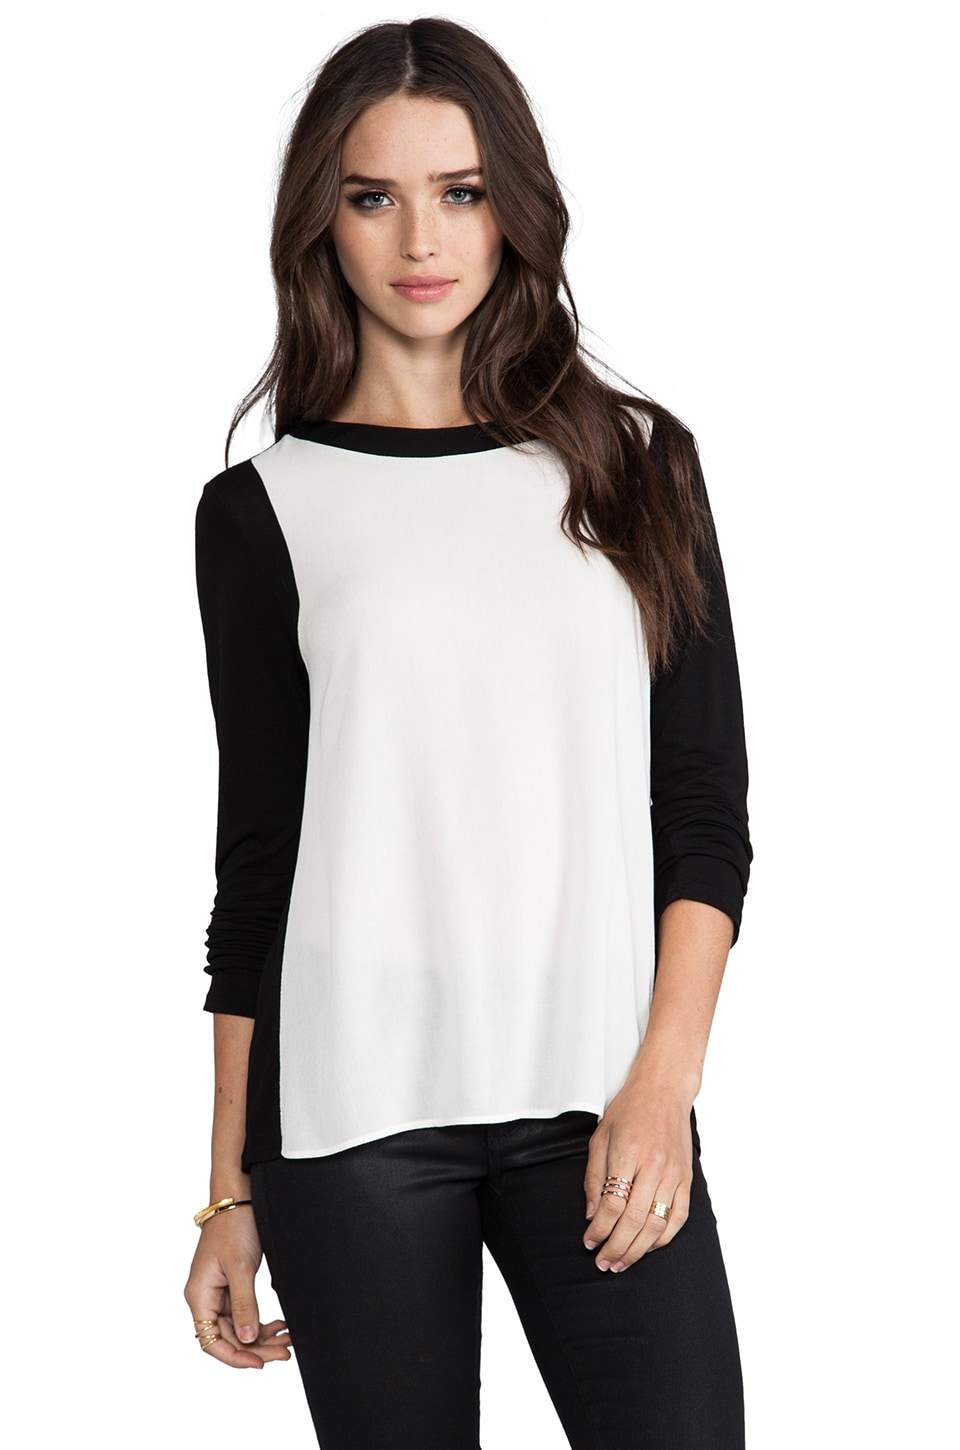 Ella Moss Portia Long Sleeve Top in Black